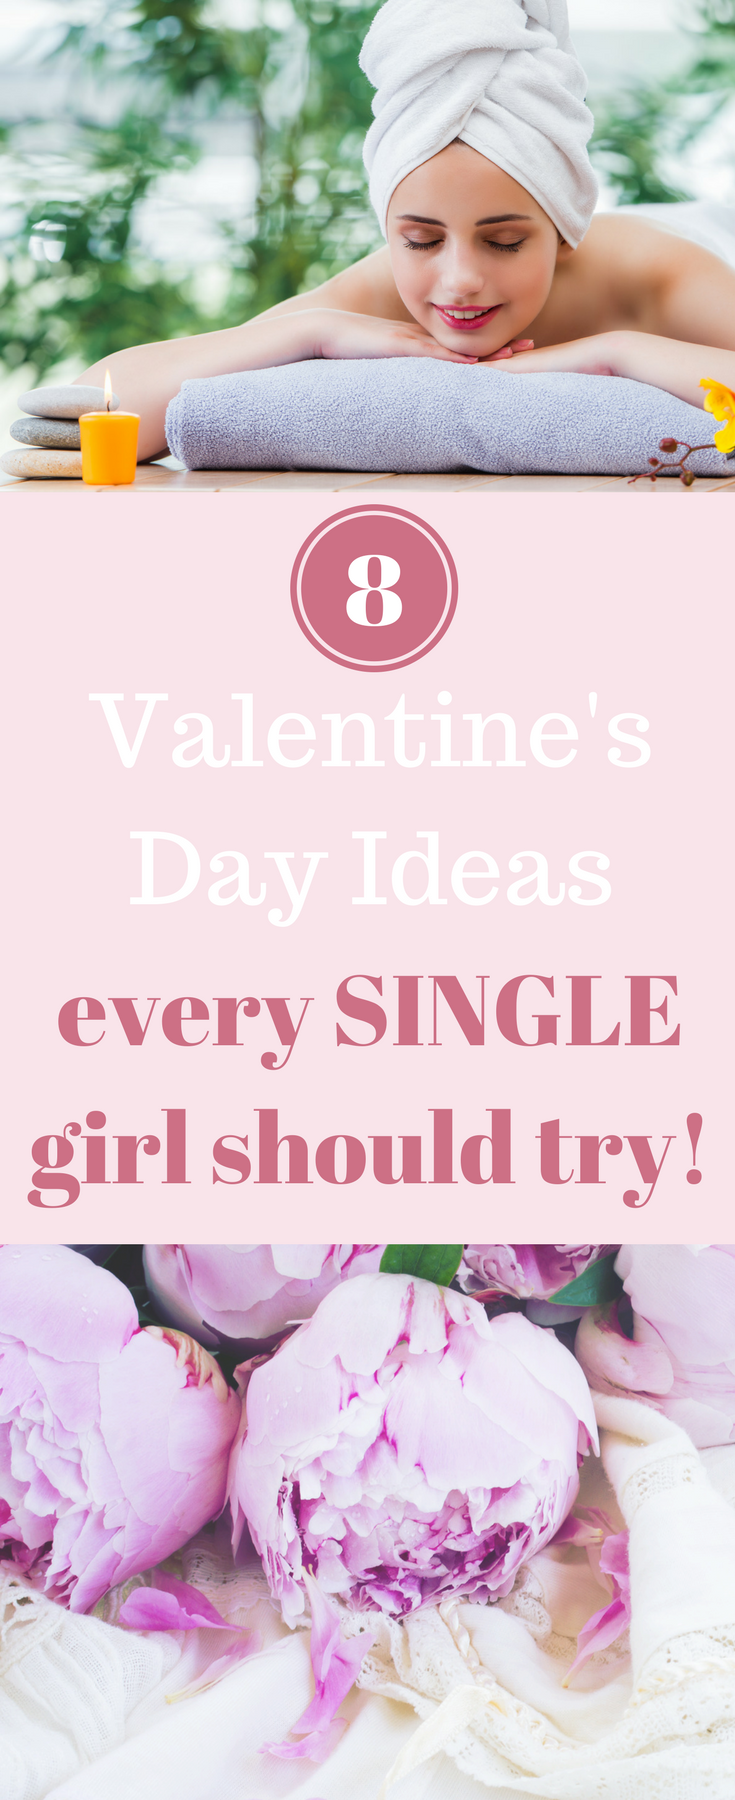 8 Valentine's Day Ideas every single girl should try